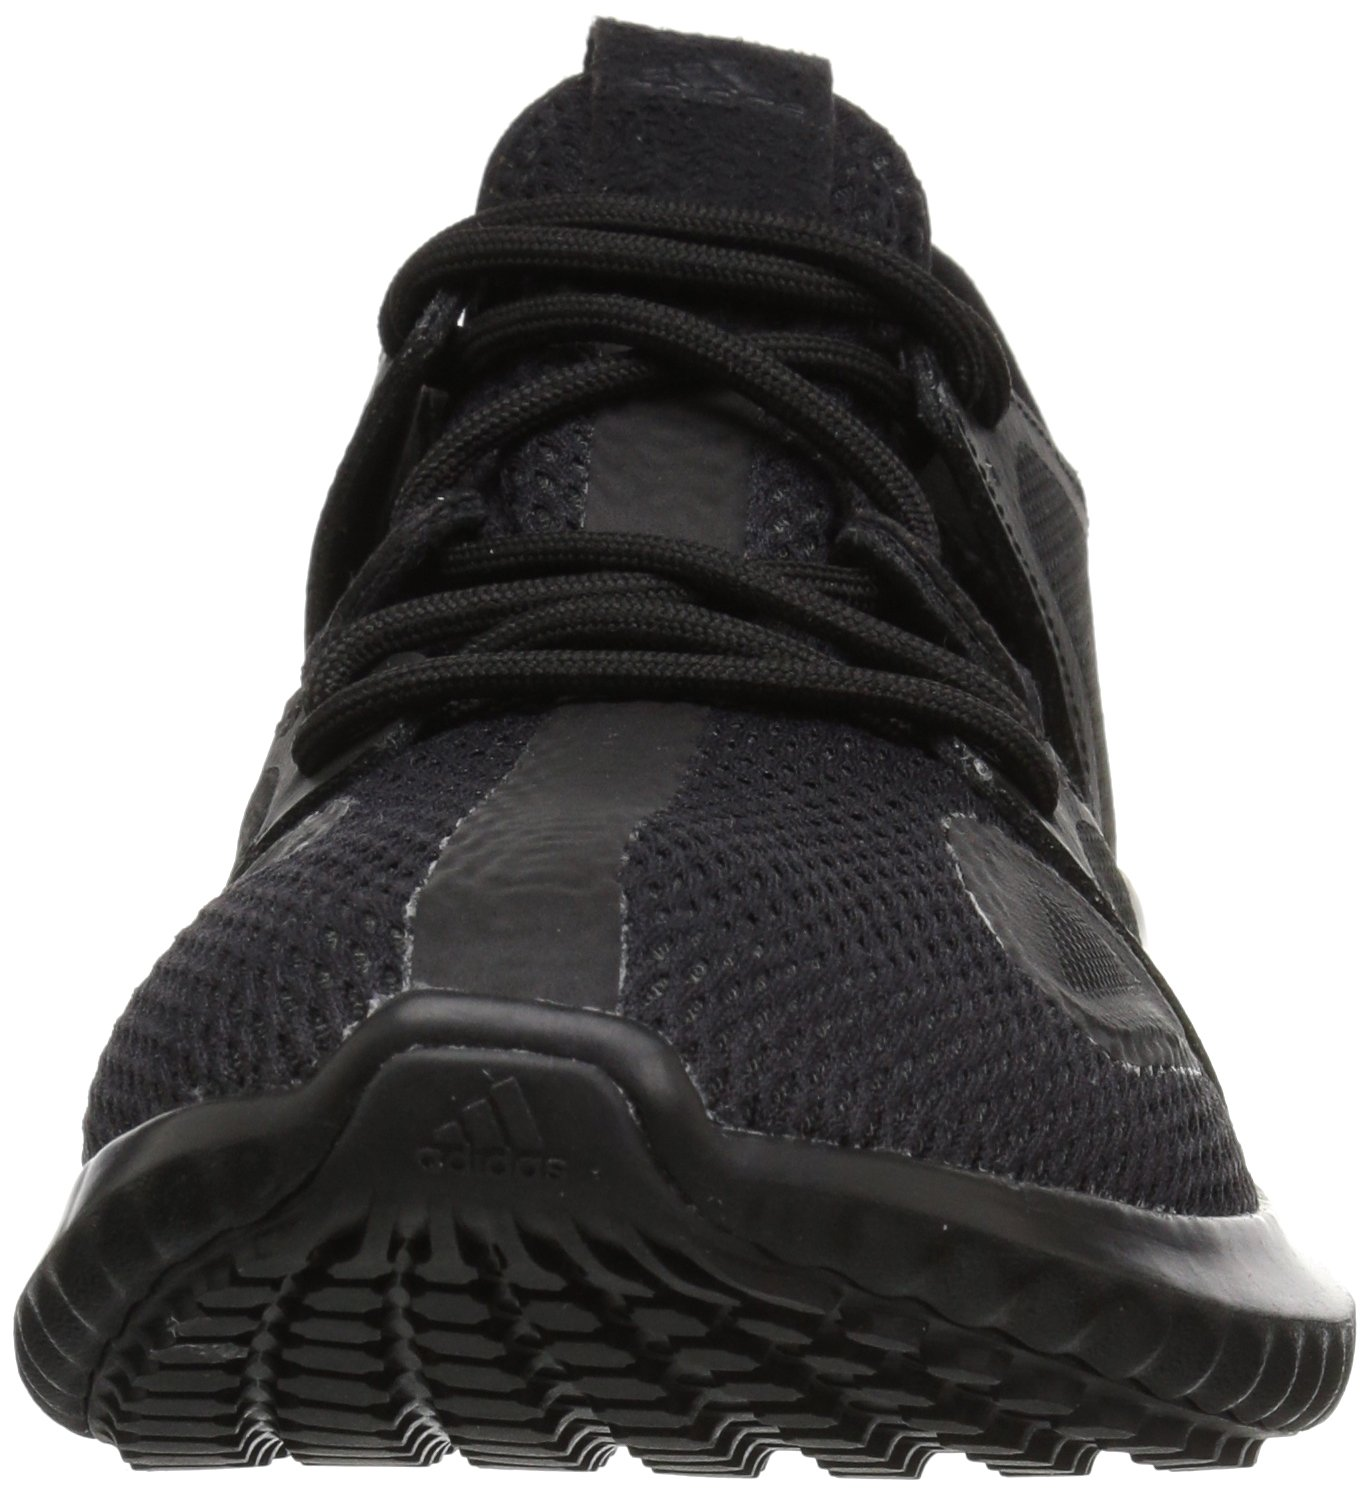 adidas Women's Lux B071F9349N Clima w Running Shoe B071F9349N Lux 9.5 B(M) US|Core Black/Carbon/Core Black d633d2